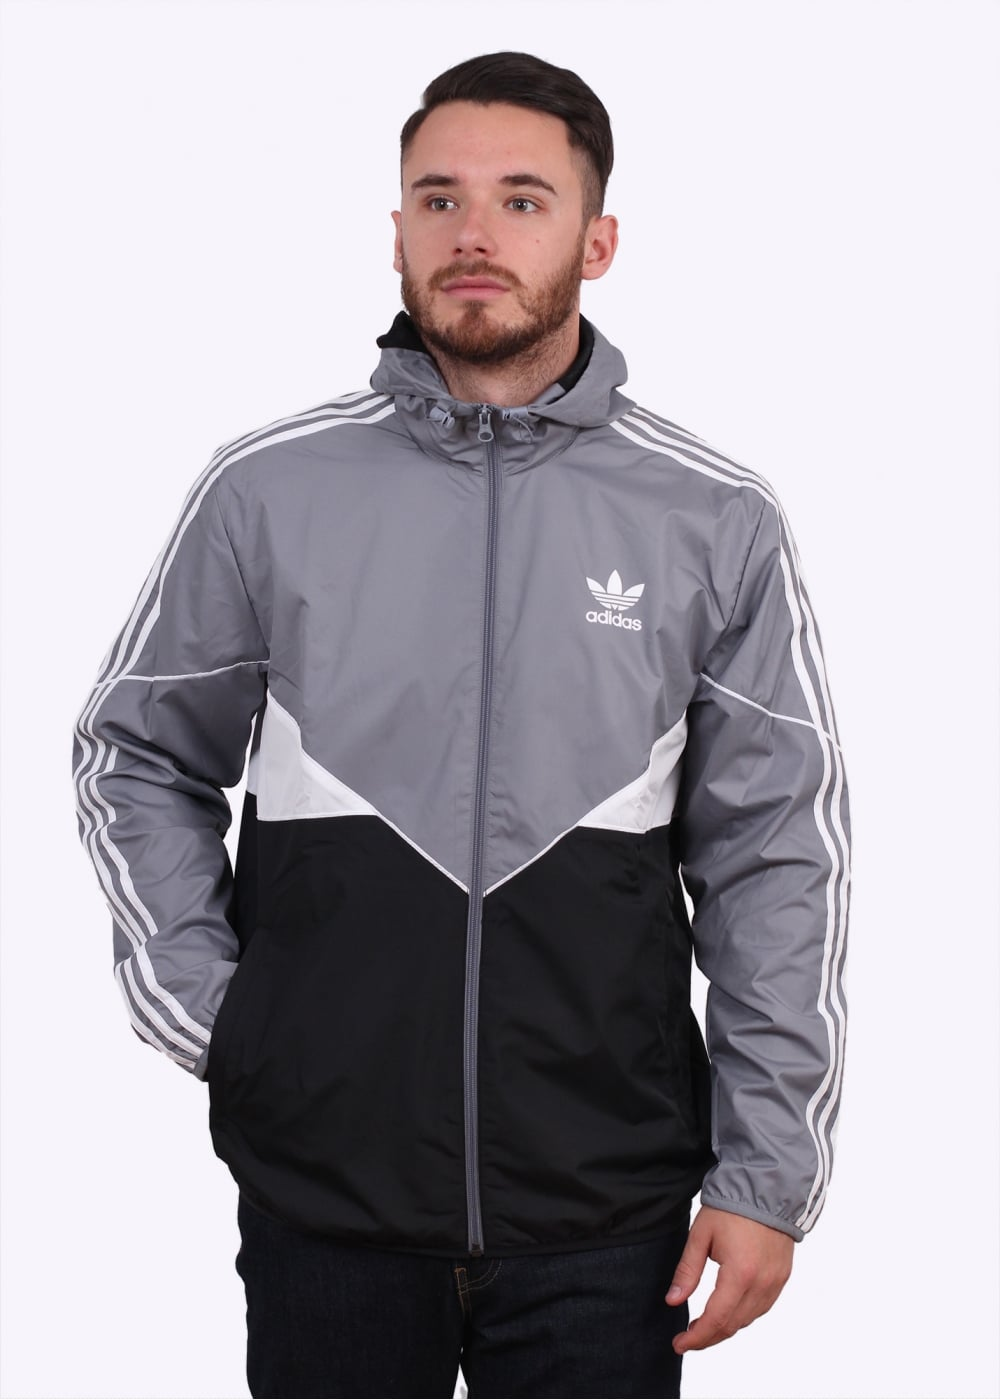 d8f322ee2 adidas Originals Apparel CRDO Windbreaker - Grey / Black - Triads ...